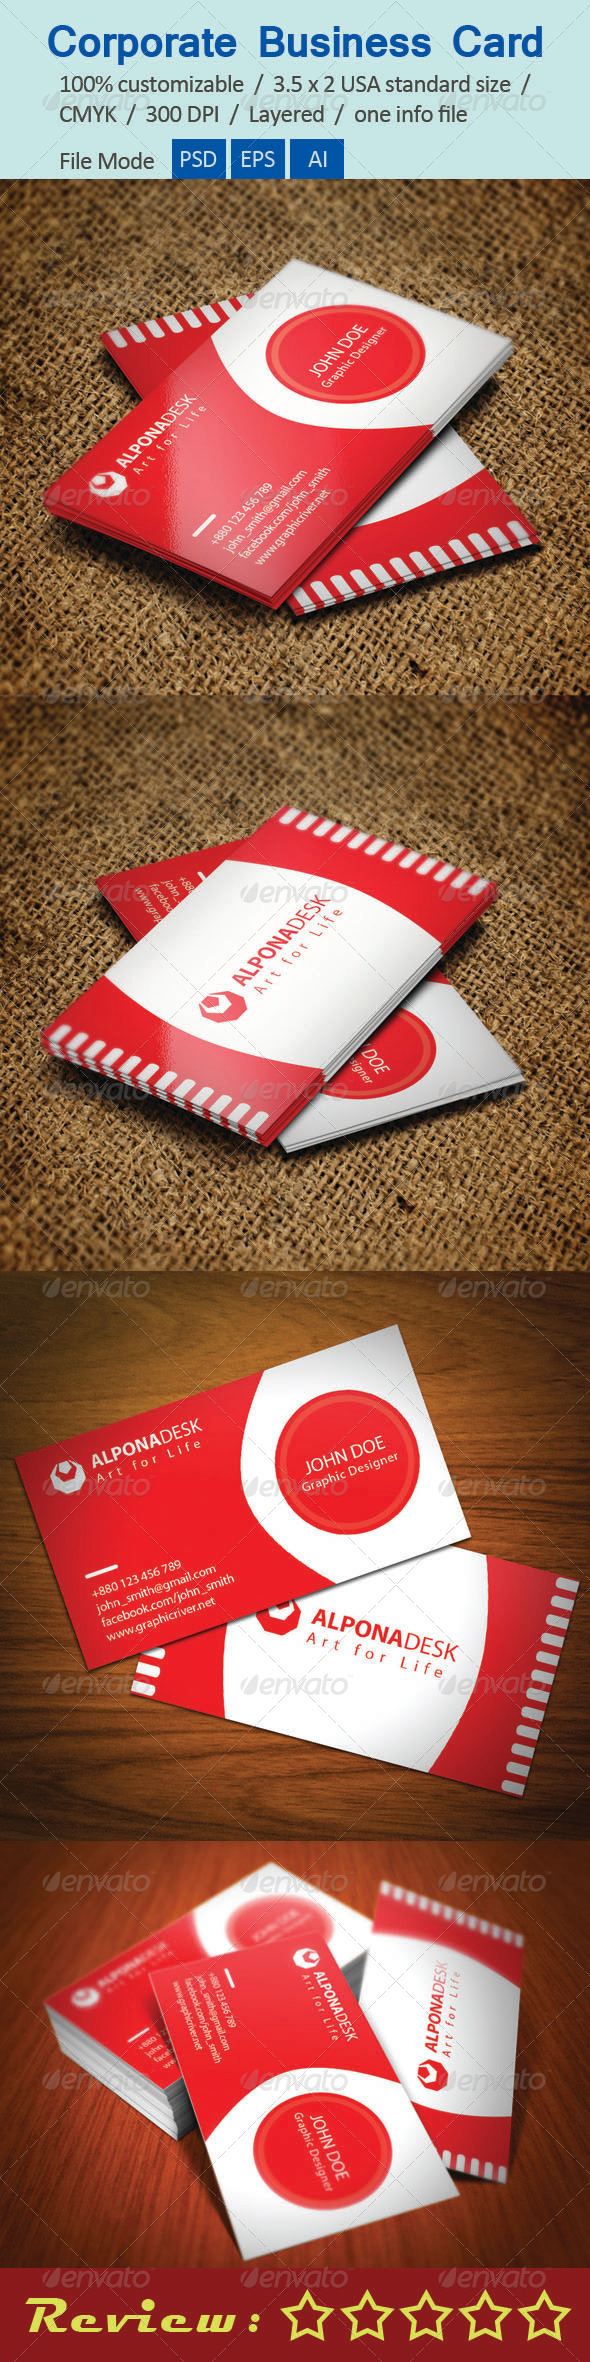 GraphicRiver Corporate Business Card V-7 5673805